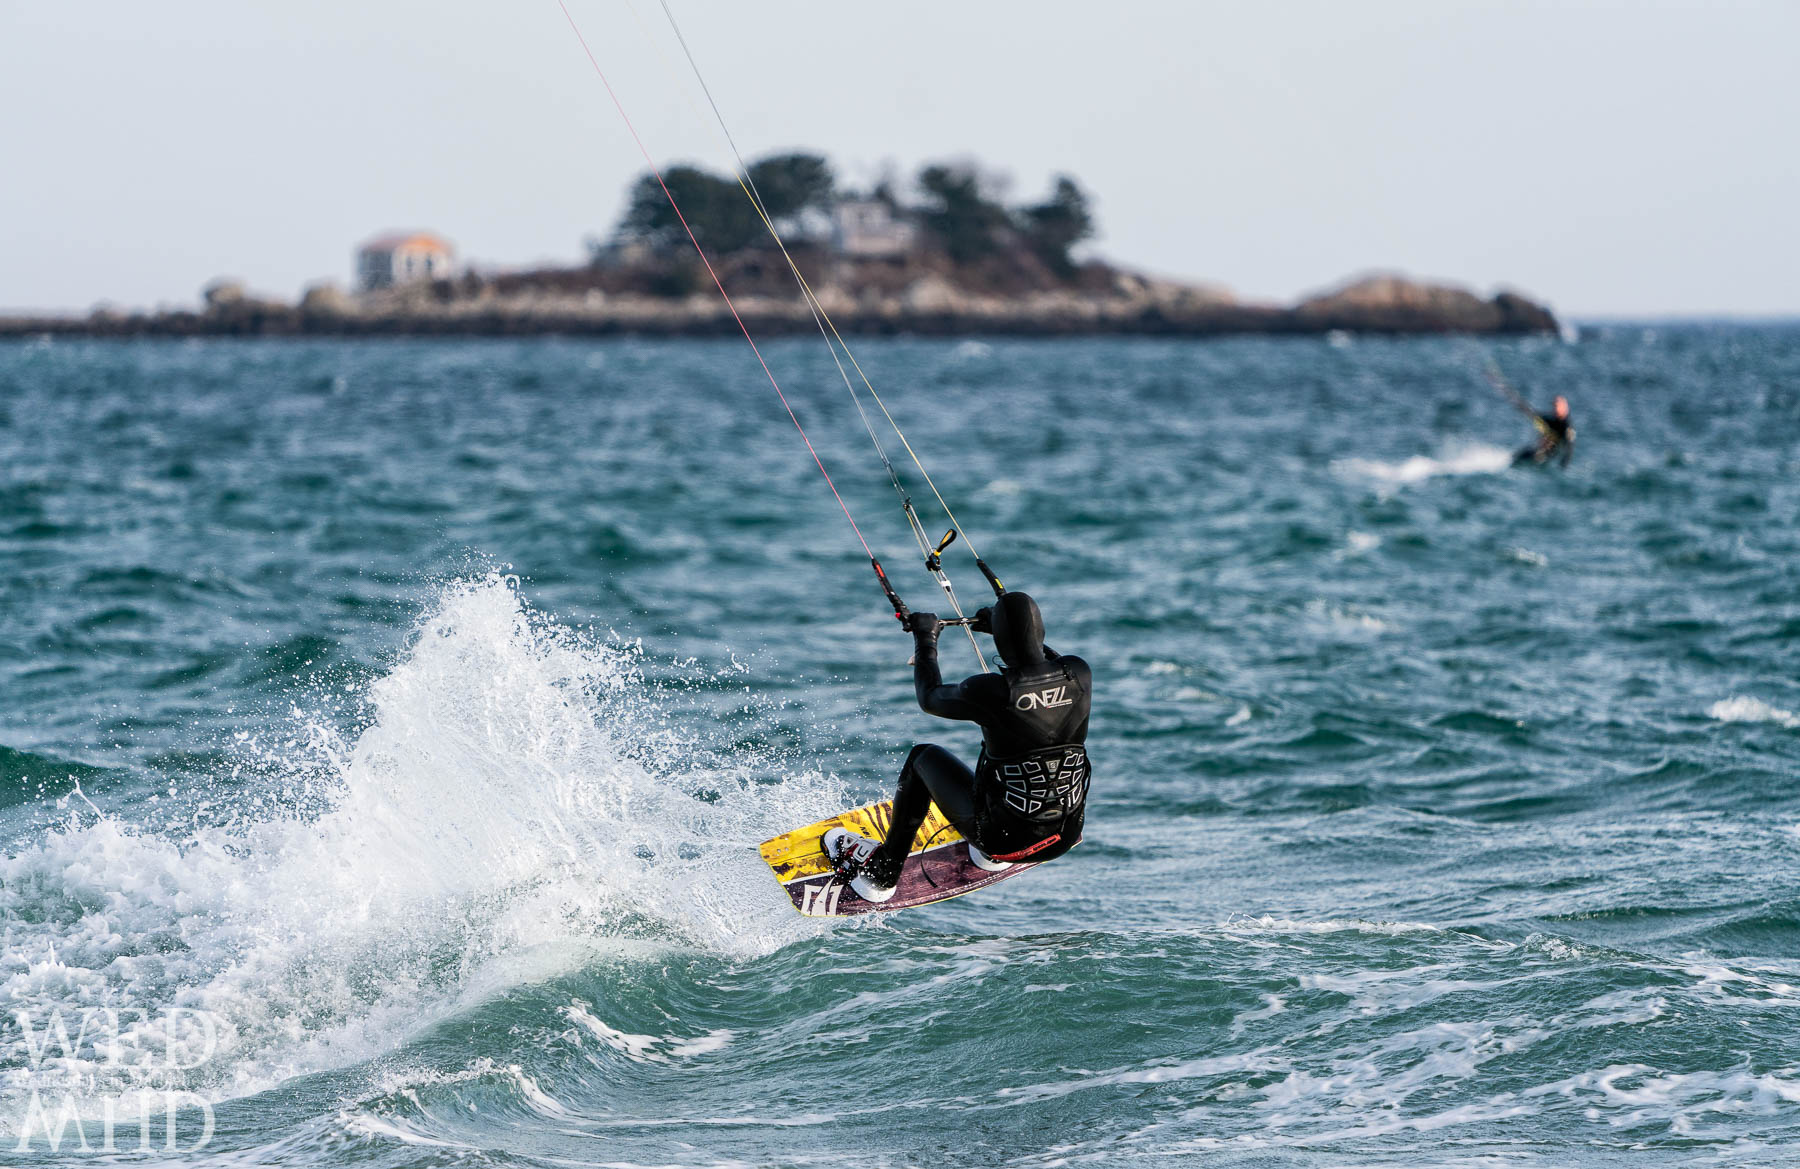 After yesterday's storm, hoping to catch a few shots of kite surfers taking advantage of what winds remain